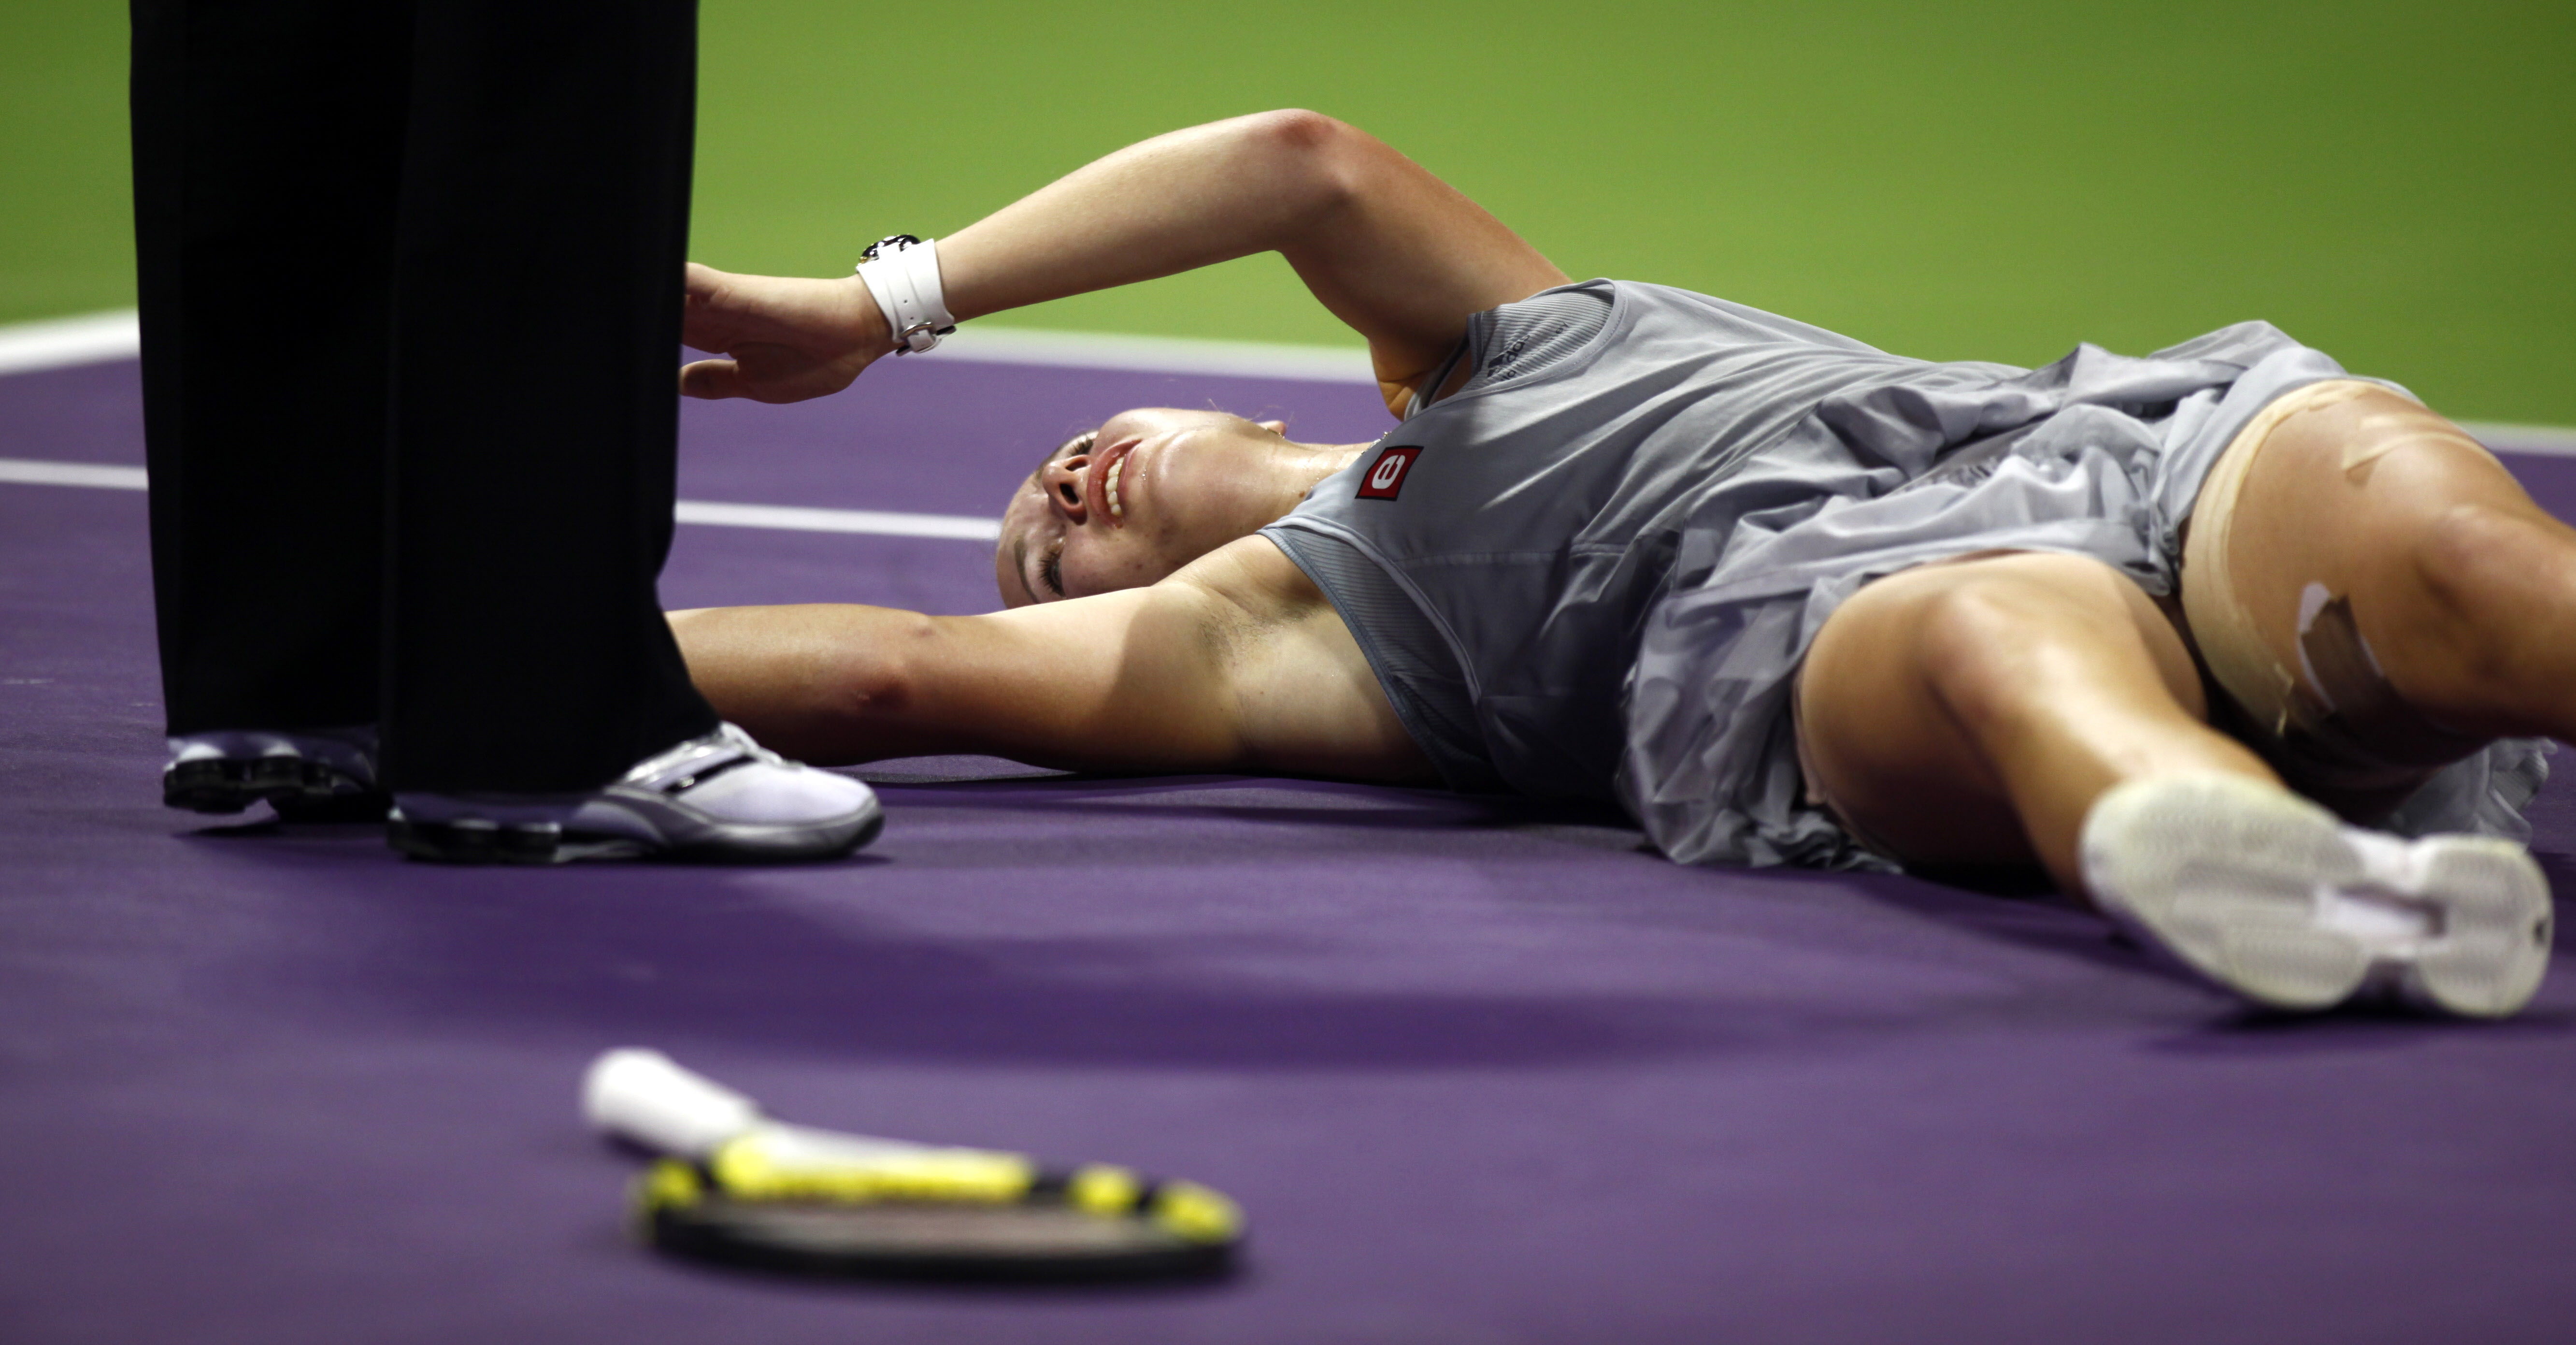 Caroline Wozniacki came down with leg cramps.